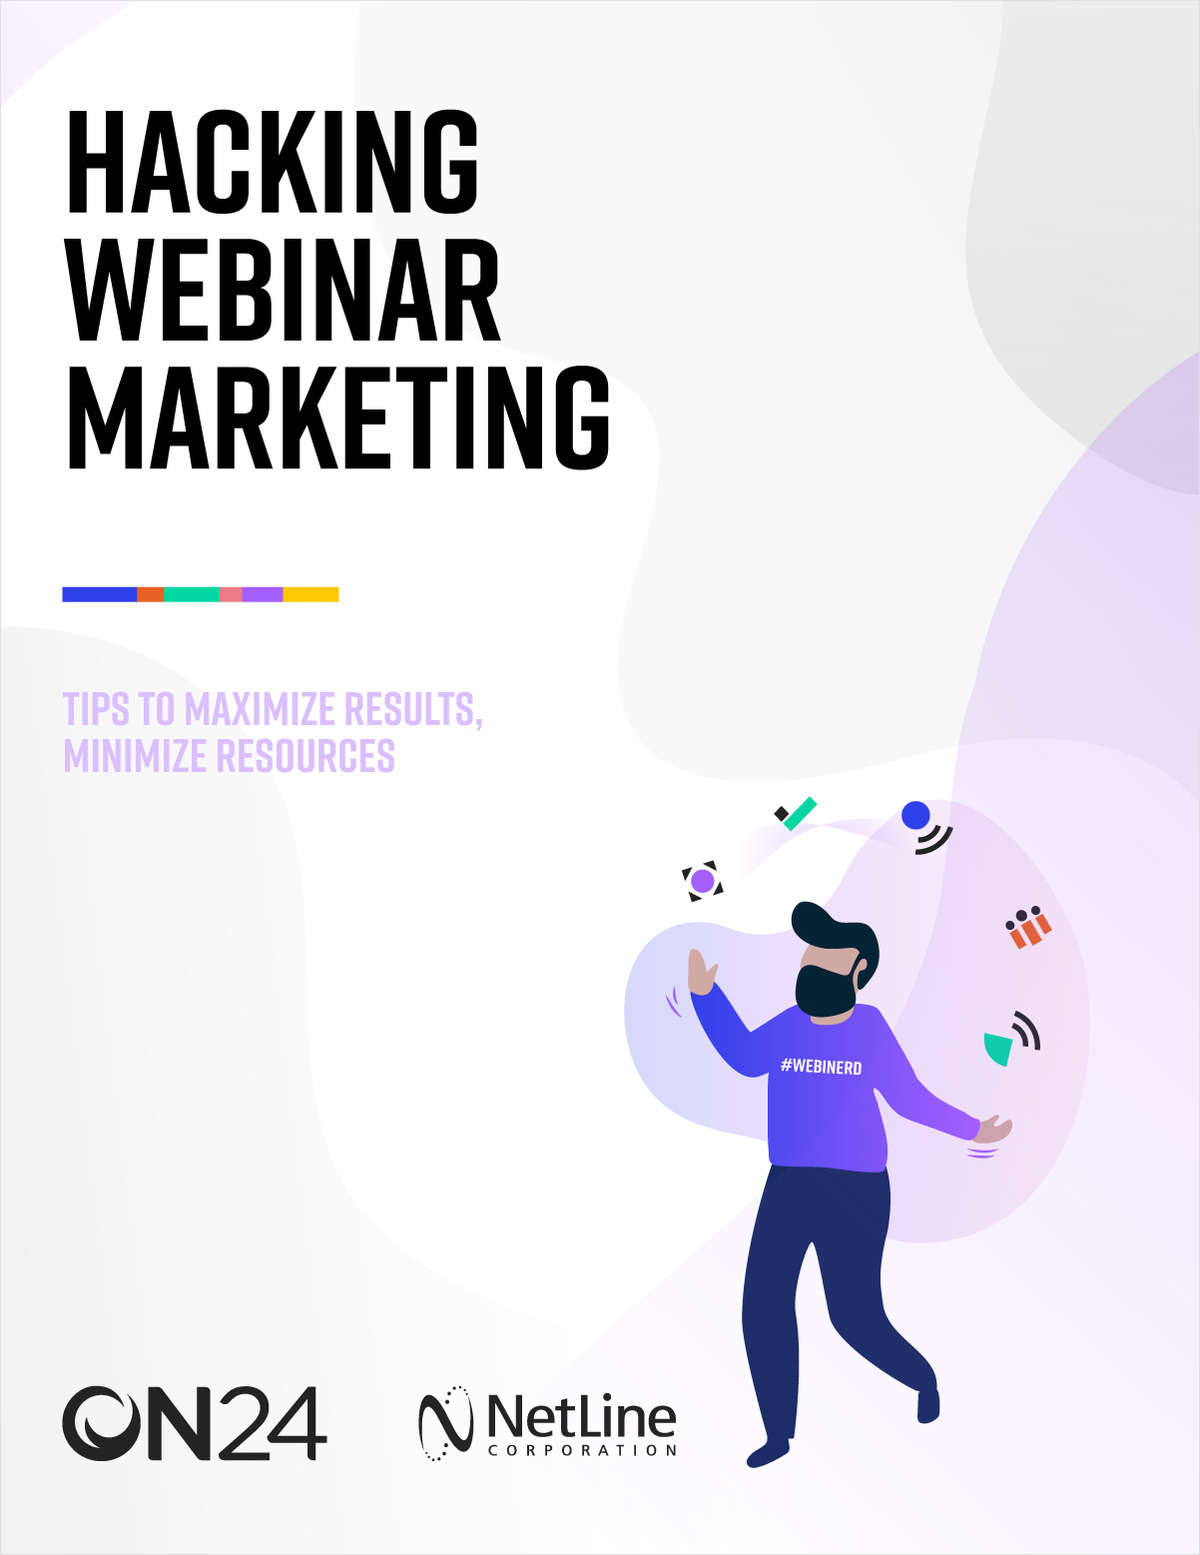 Hacking Webinar Marketing